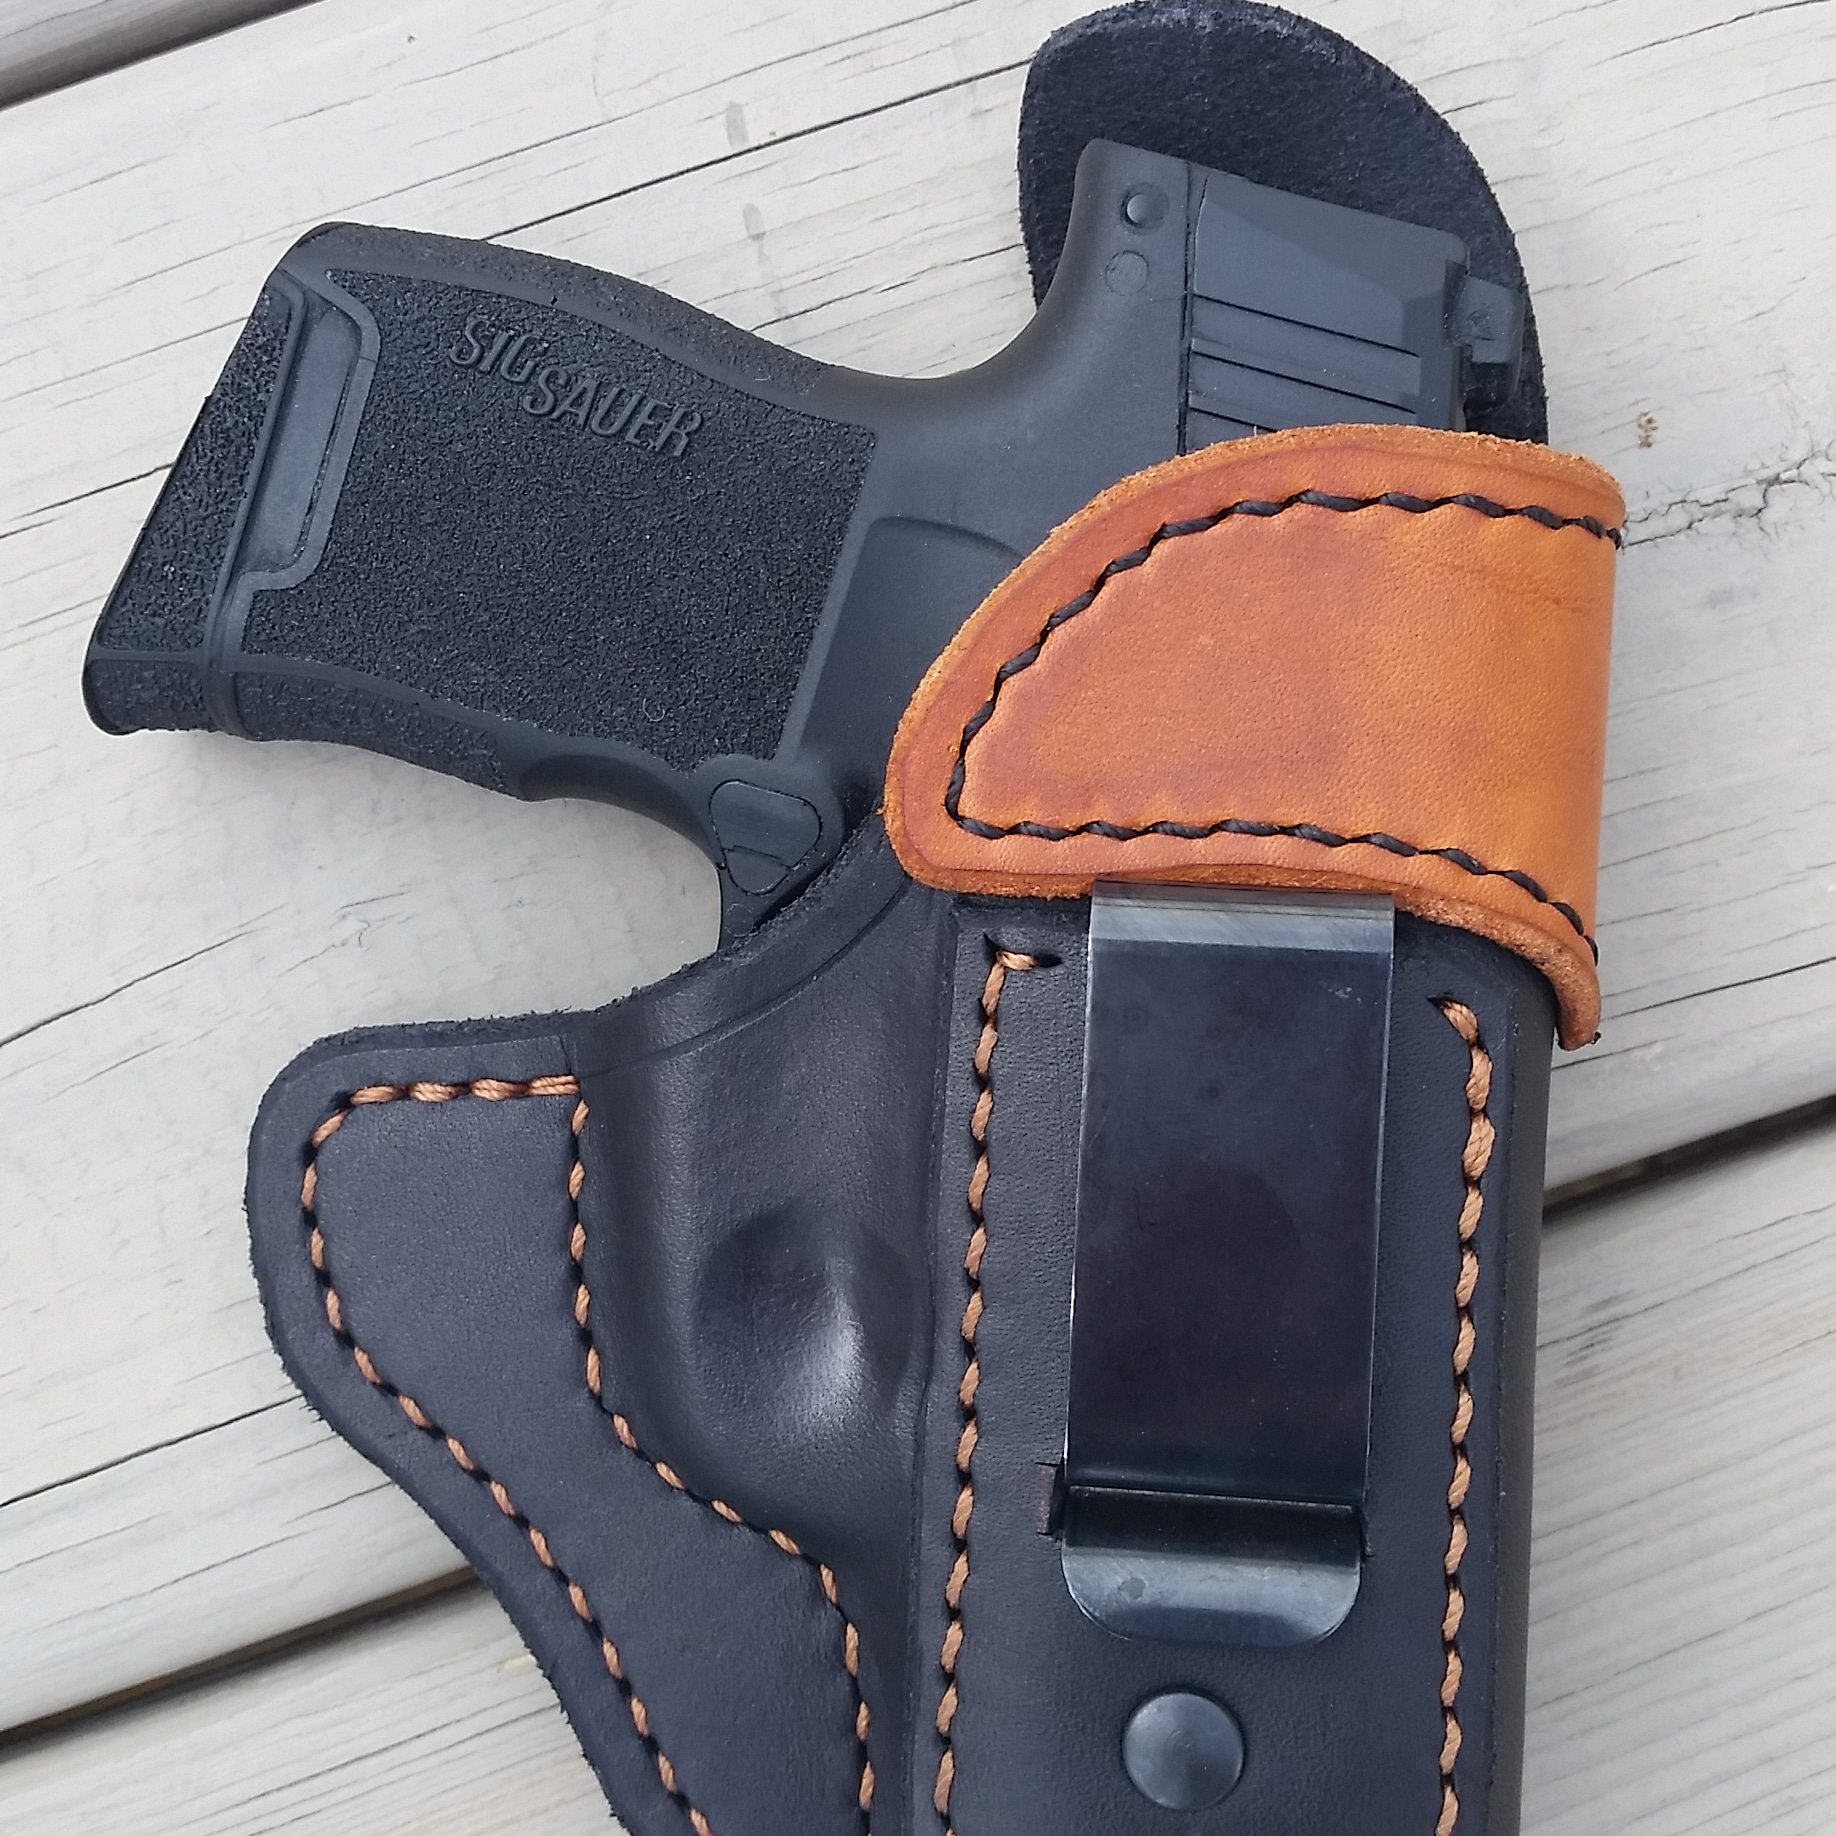 Madison : P365 holster reddit